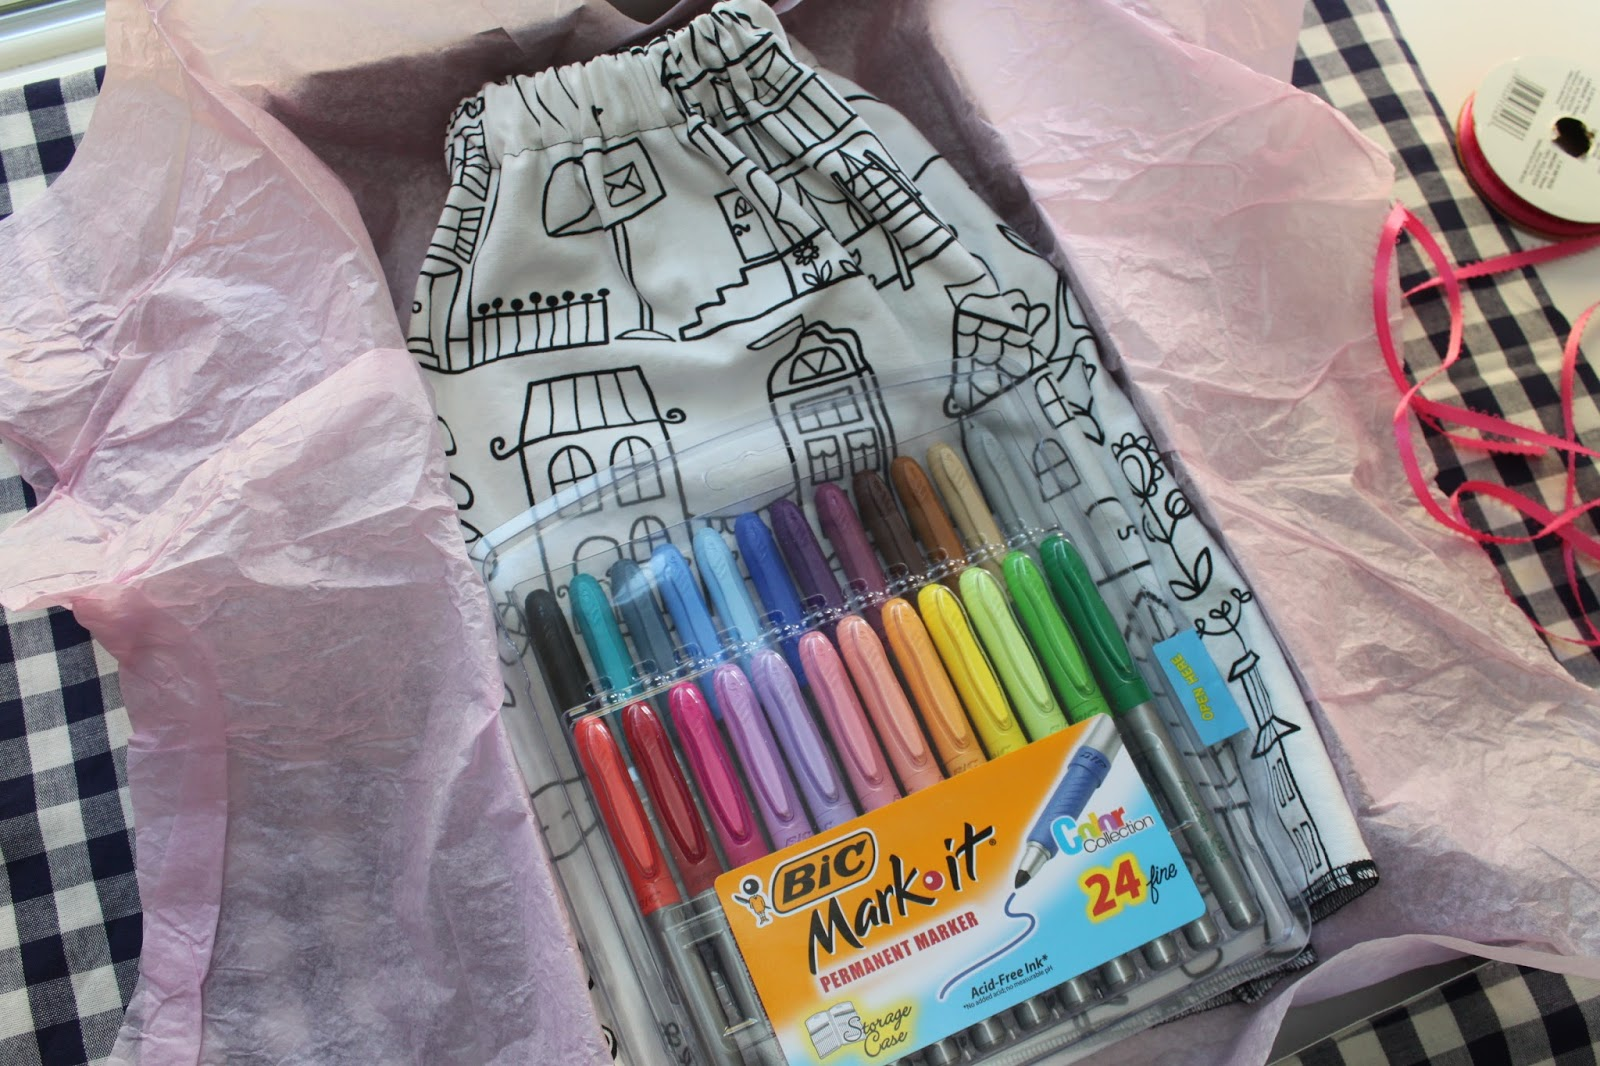 use fabric markers or paint pens and packaged it up for my little niece for christmas i know shes going to have a ton of fun coloring her skirt